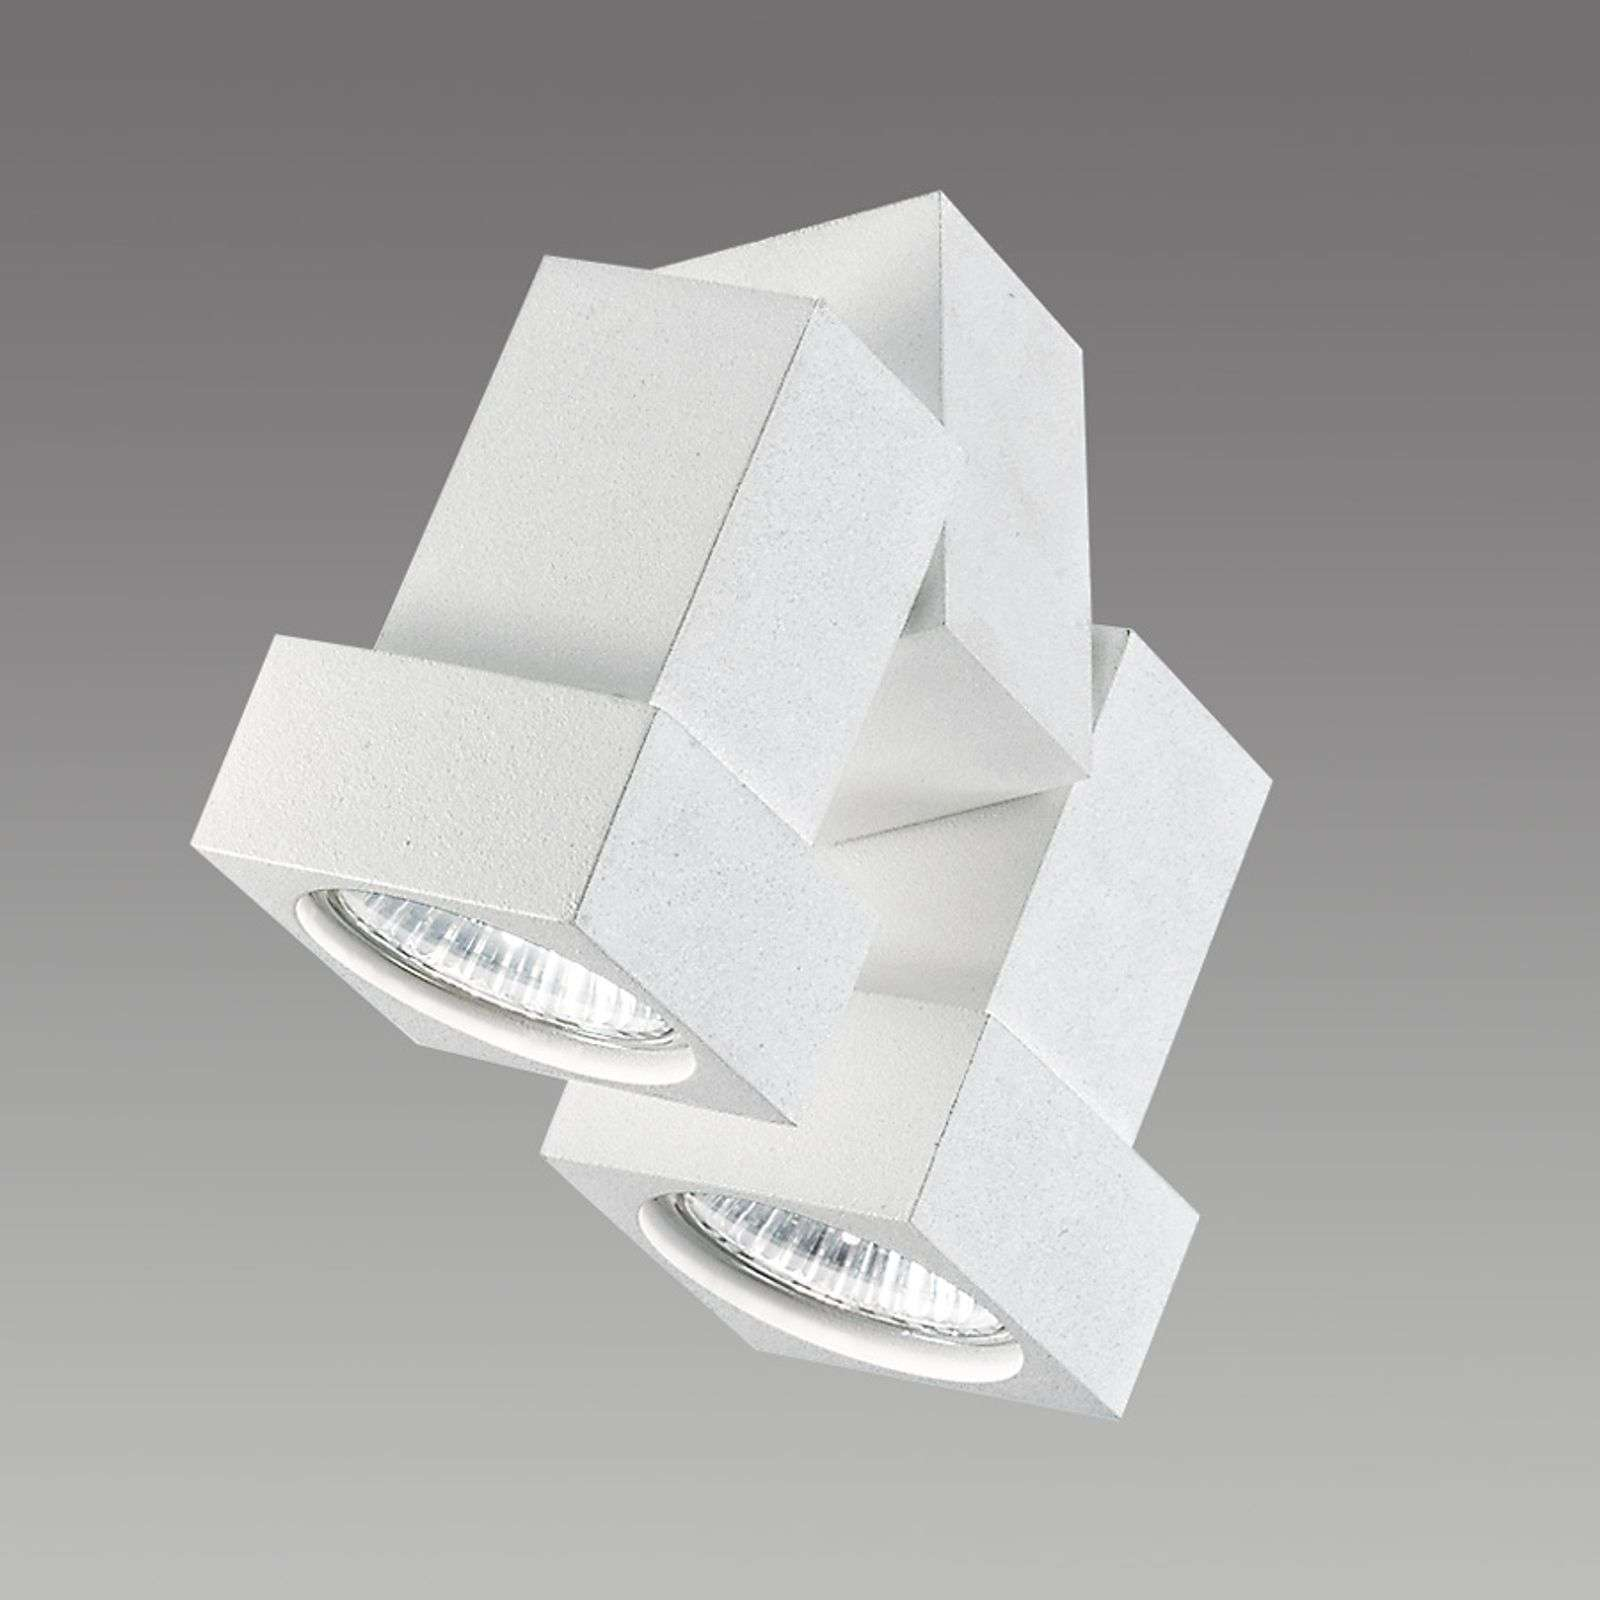 STYLE Q ceiling or wall spotlight, two-bulb, white